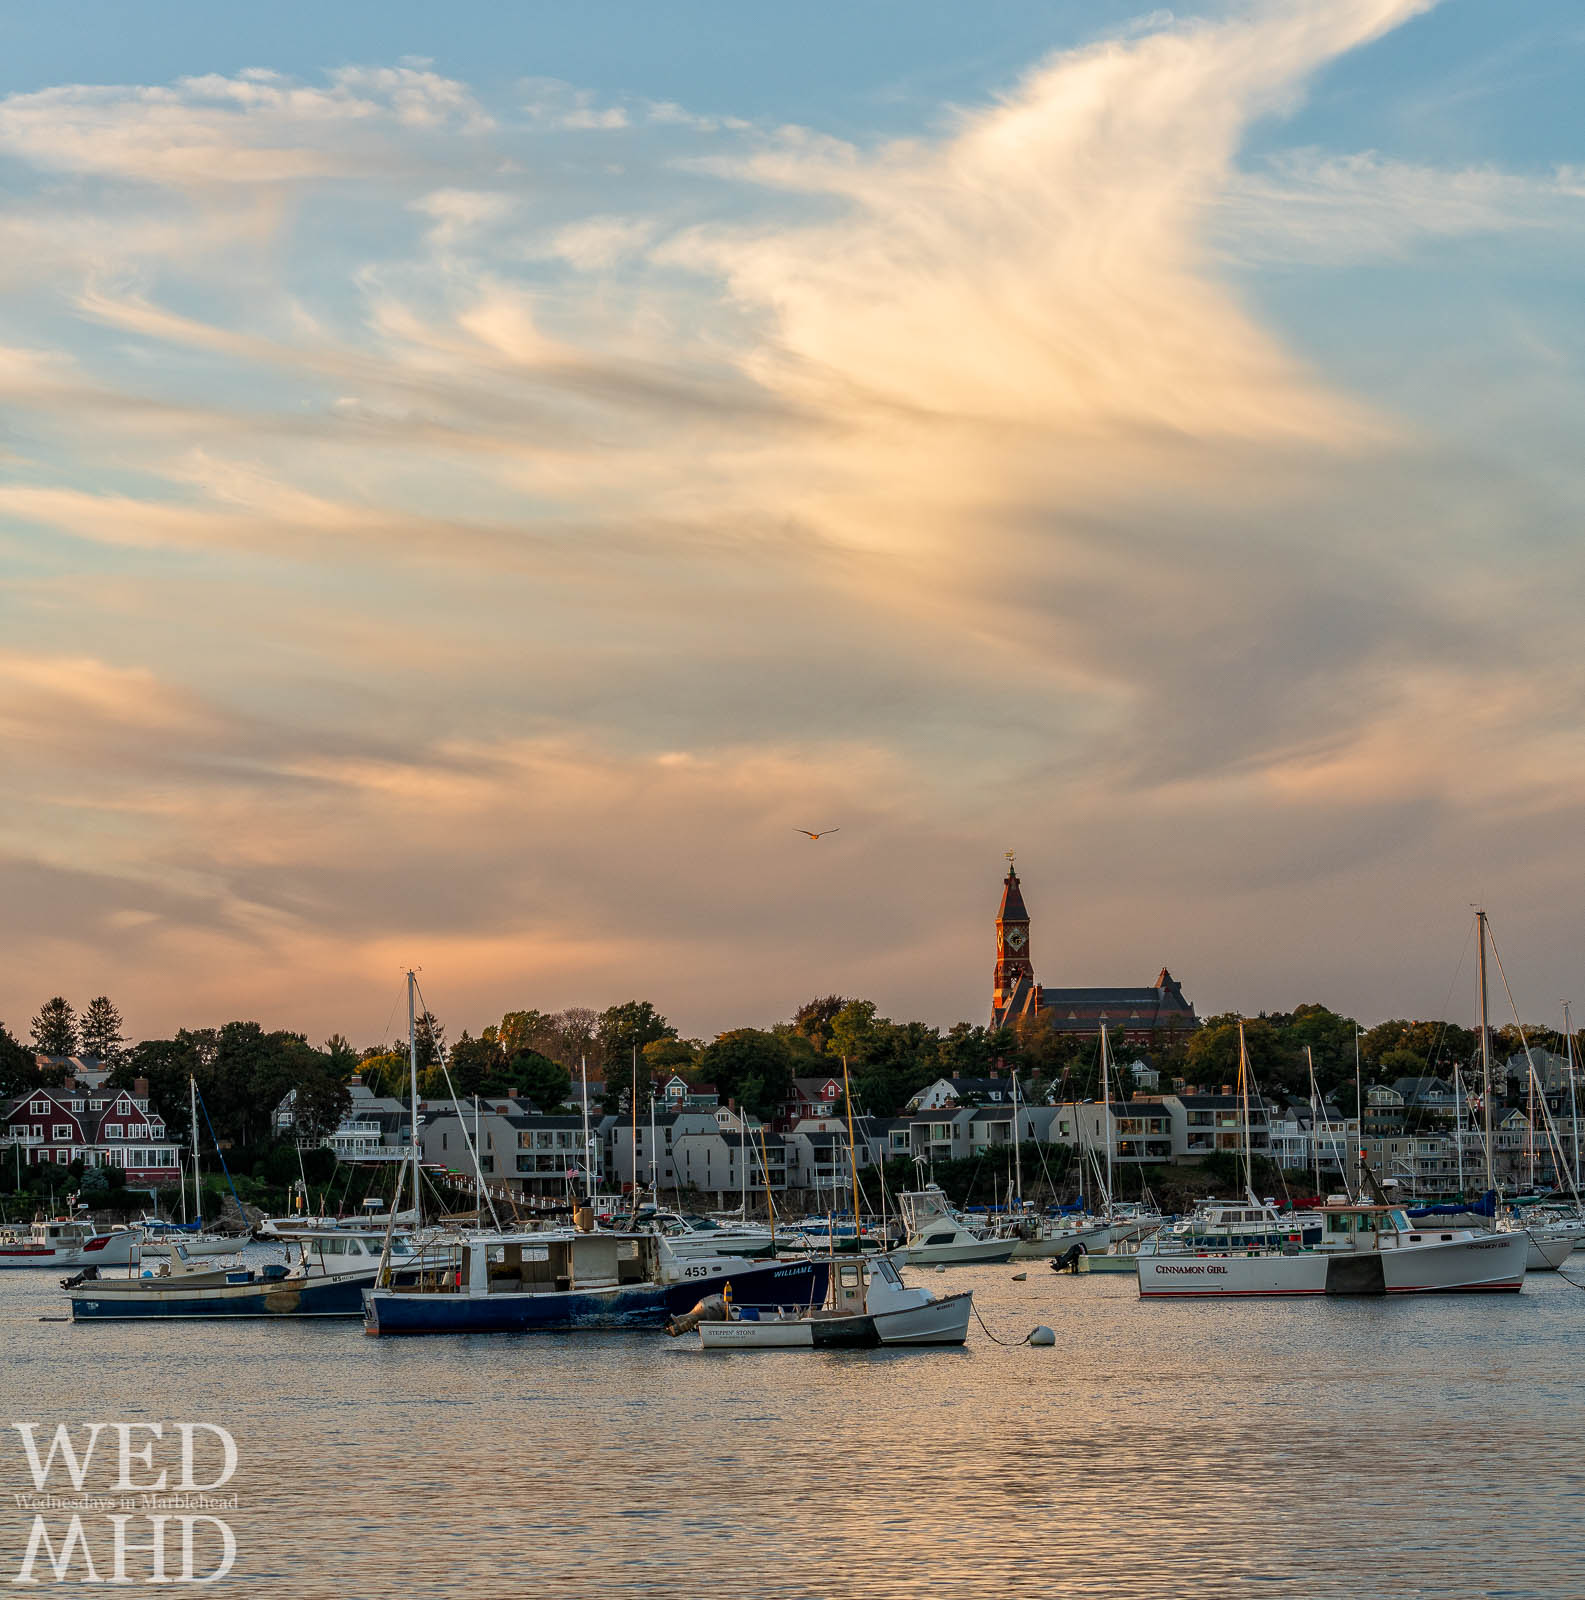 A sea gull is lit in red light as it flies through the last of sunset's light over a crowded Marblehead Harbor